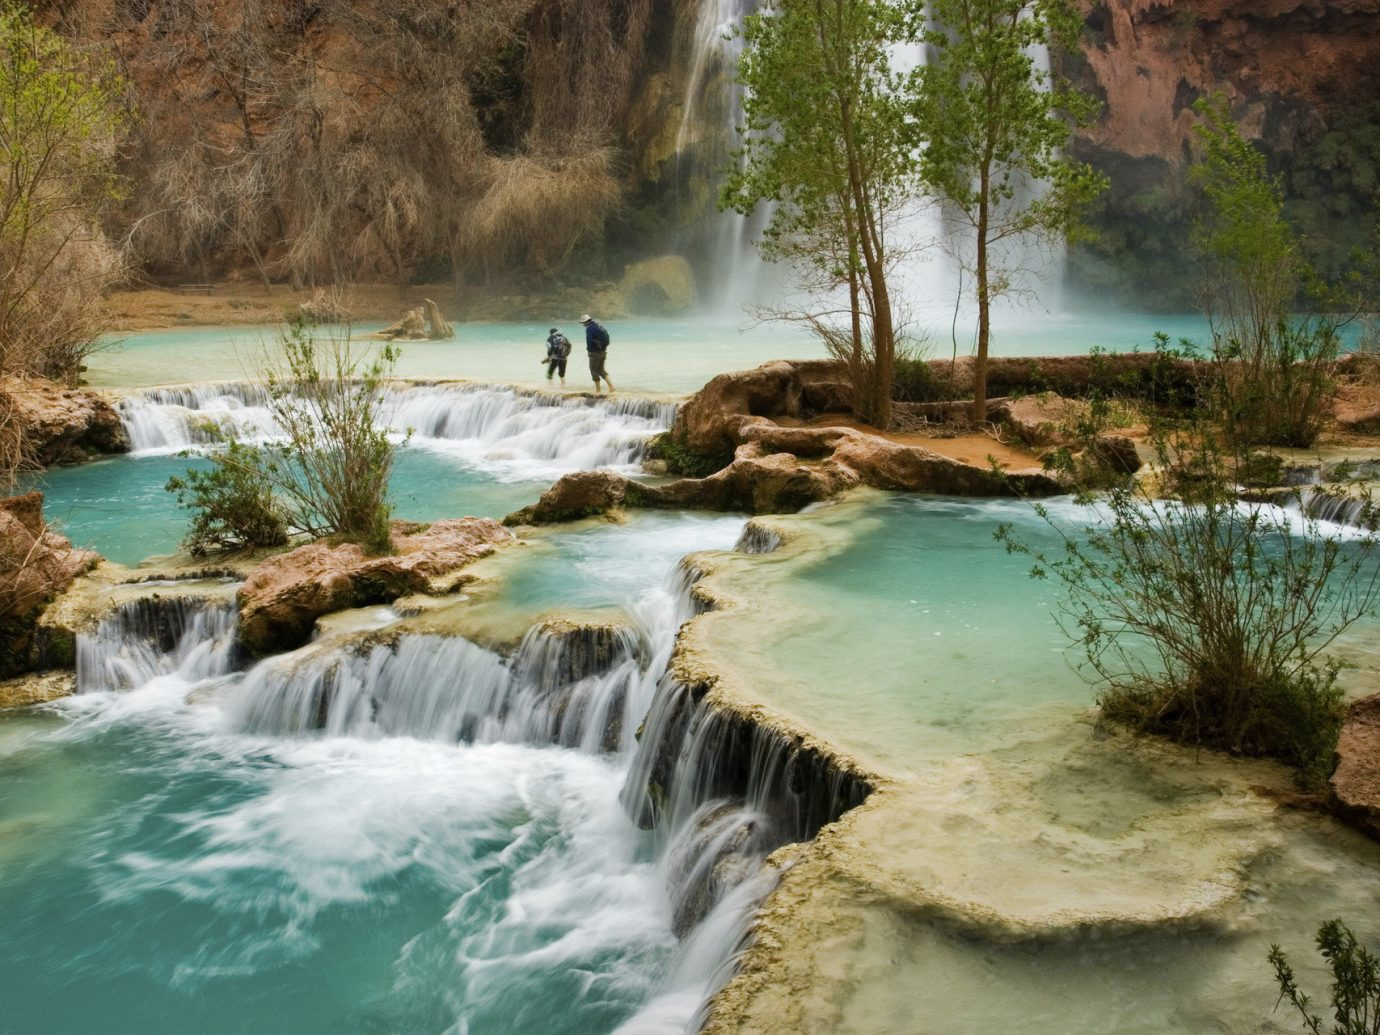 Lakes + Rivers Landmarks Trip Ideas tree water Nature outdoor Waterfall River body of water wilderness watercourse rapid stream water feature reflection rock landscape pond surrounded